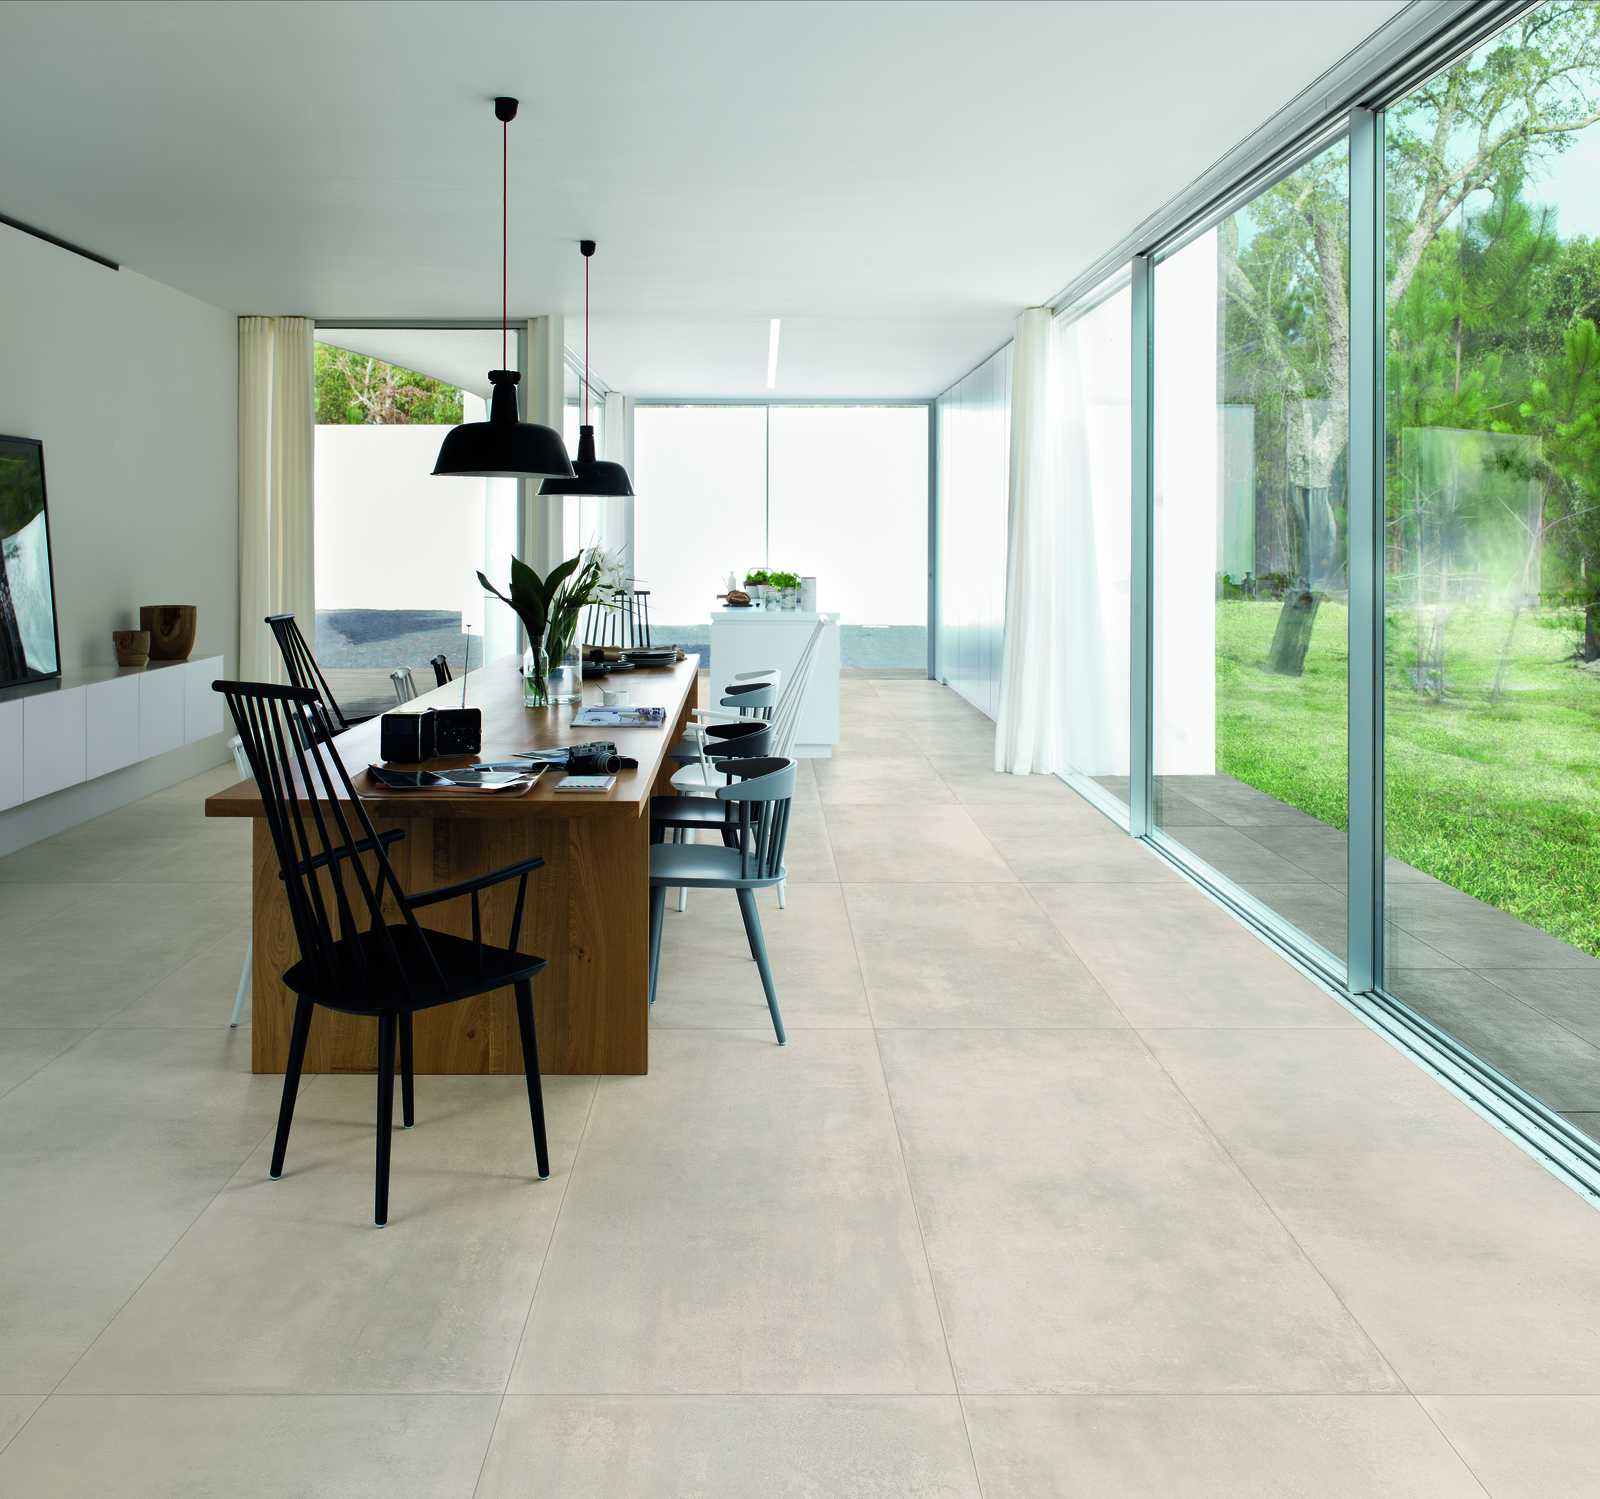 Living room floor inspiration for your furniture marazzi living room tiles your home decor inspiration marazzi 7933 doublecrazyfo Choice Image